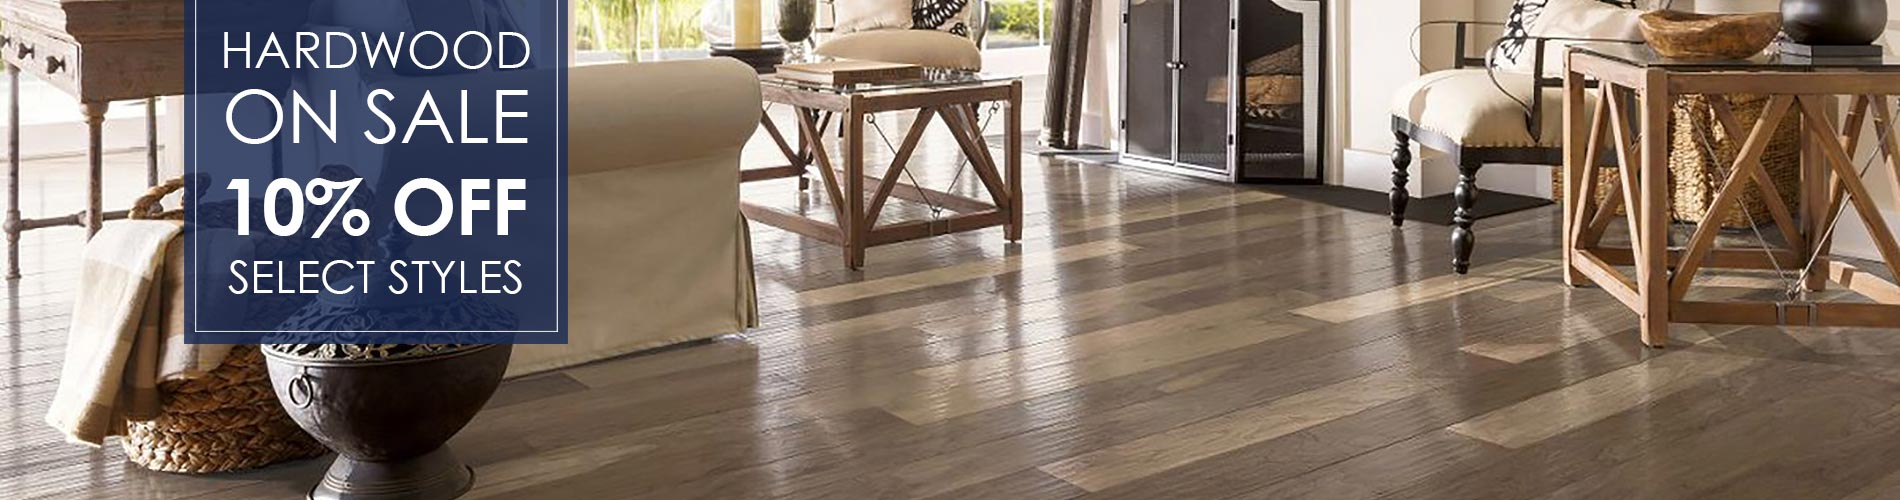 10% Off select hardwood styles! Stop by our showroom in Livermore, California  to see even more amazing deals!